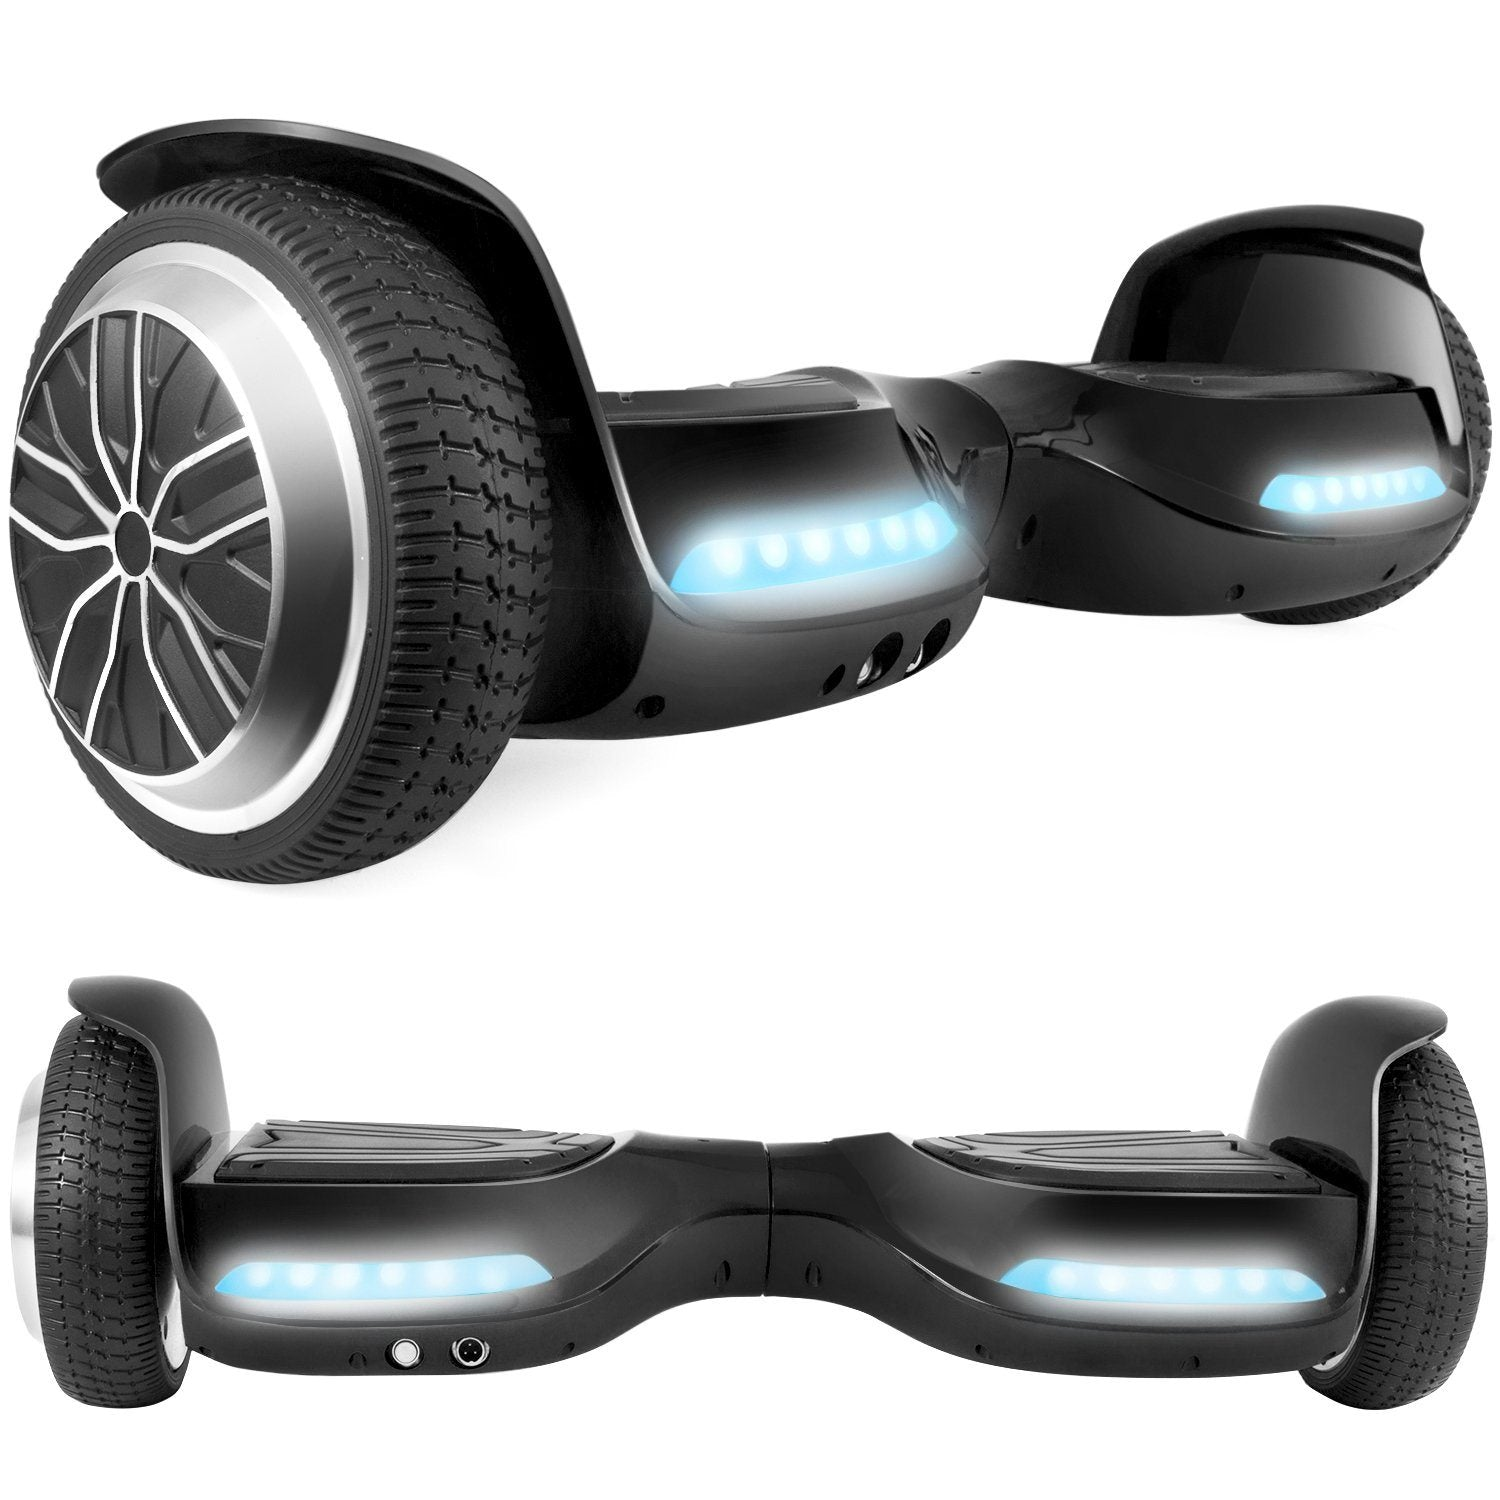 XPRIT 2018 Black T67SE Safe Hoverboard UL2272 certified with Bluetooth Speaker Free Shipping. - HoverBoard4sale